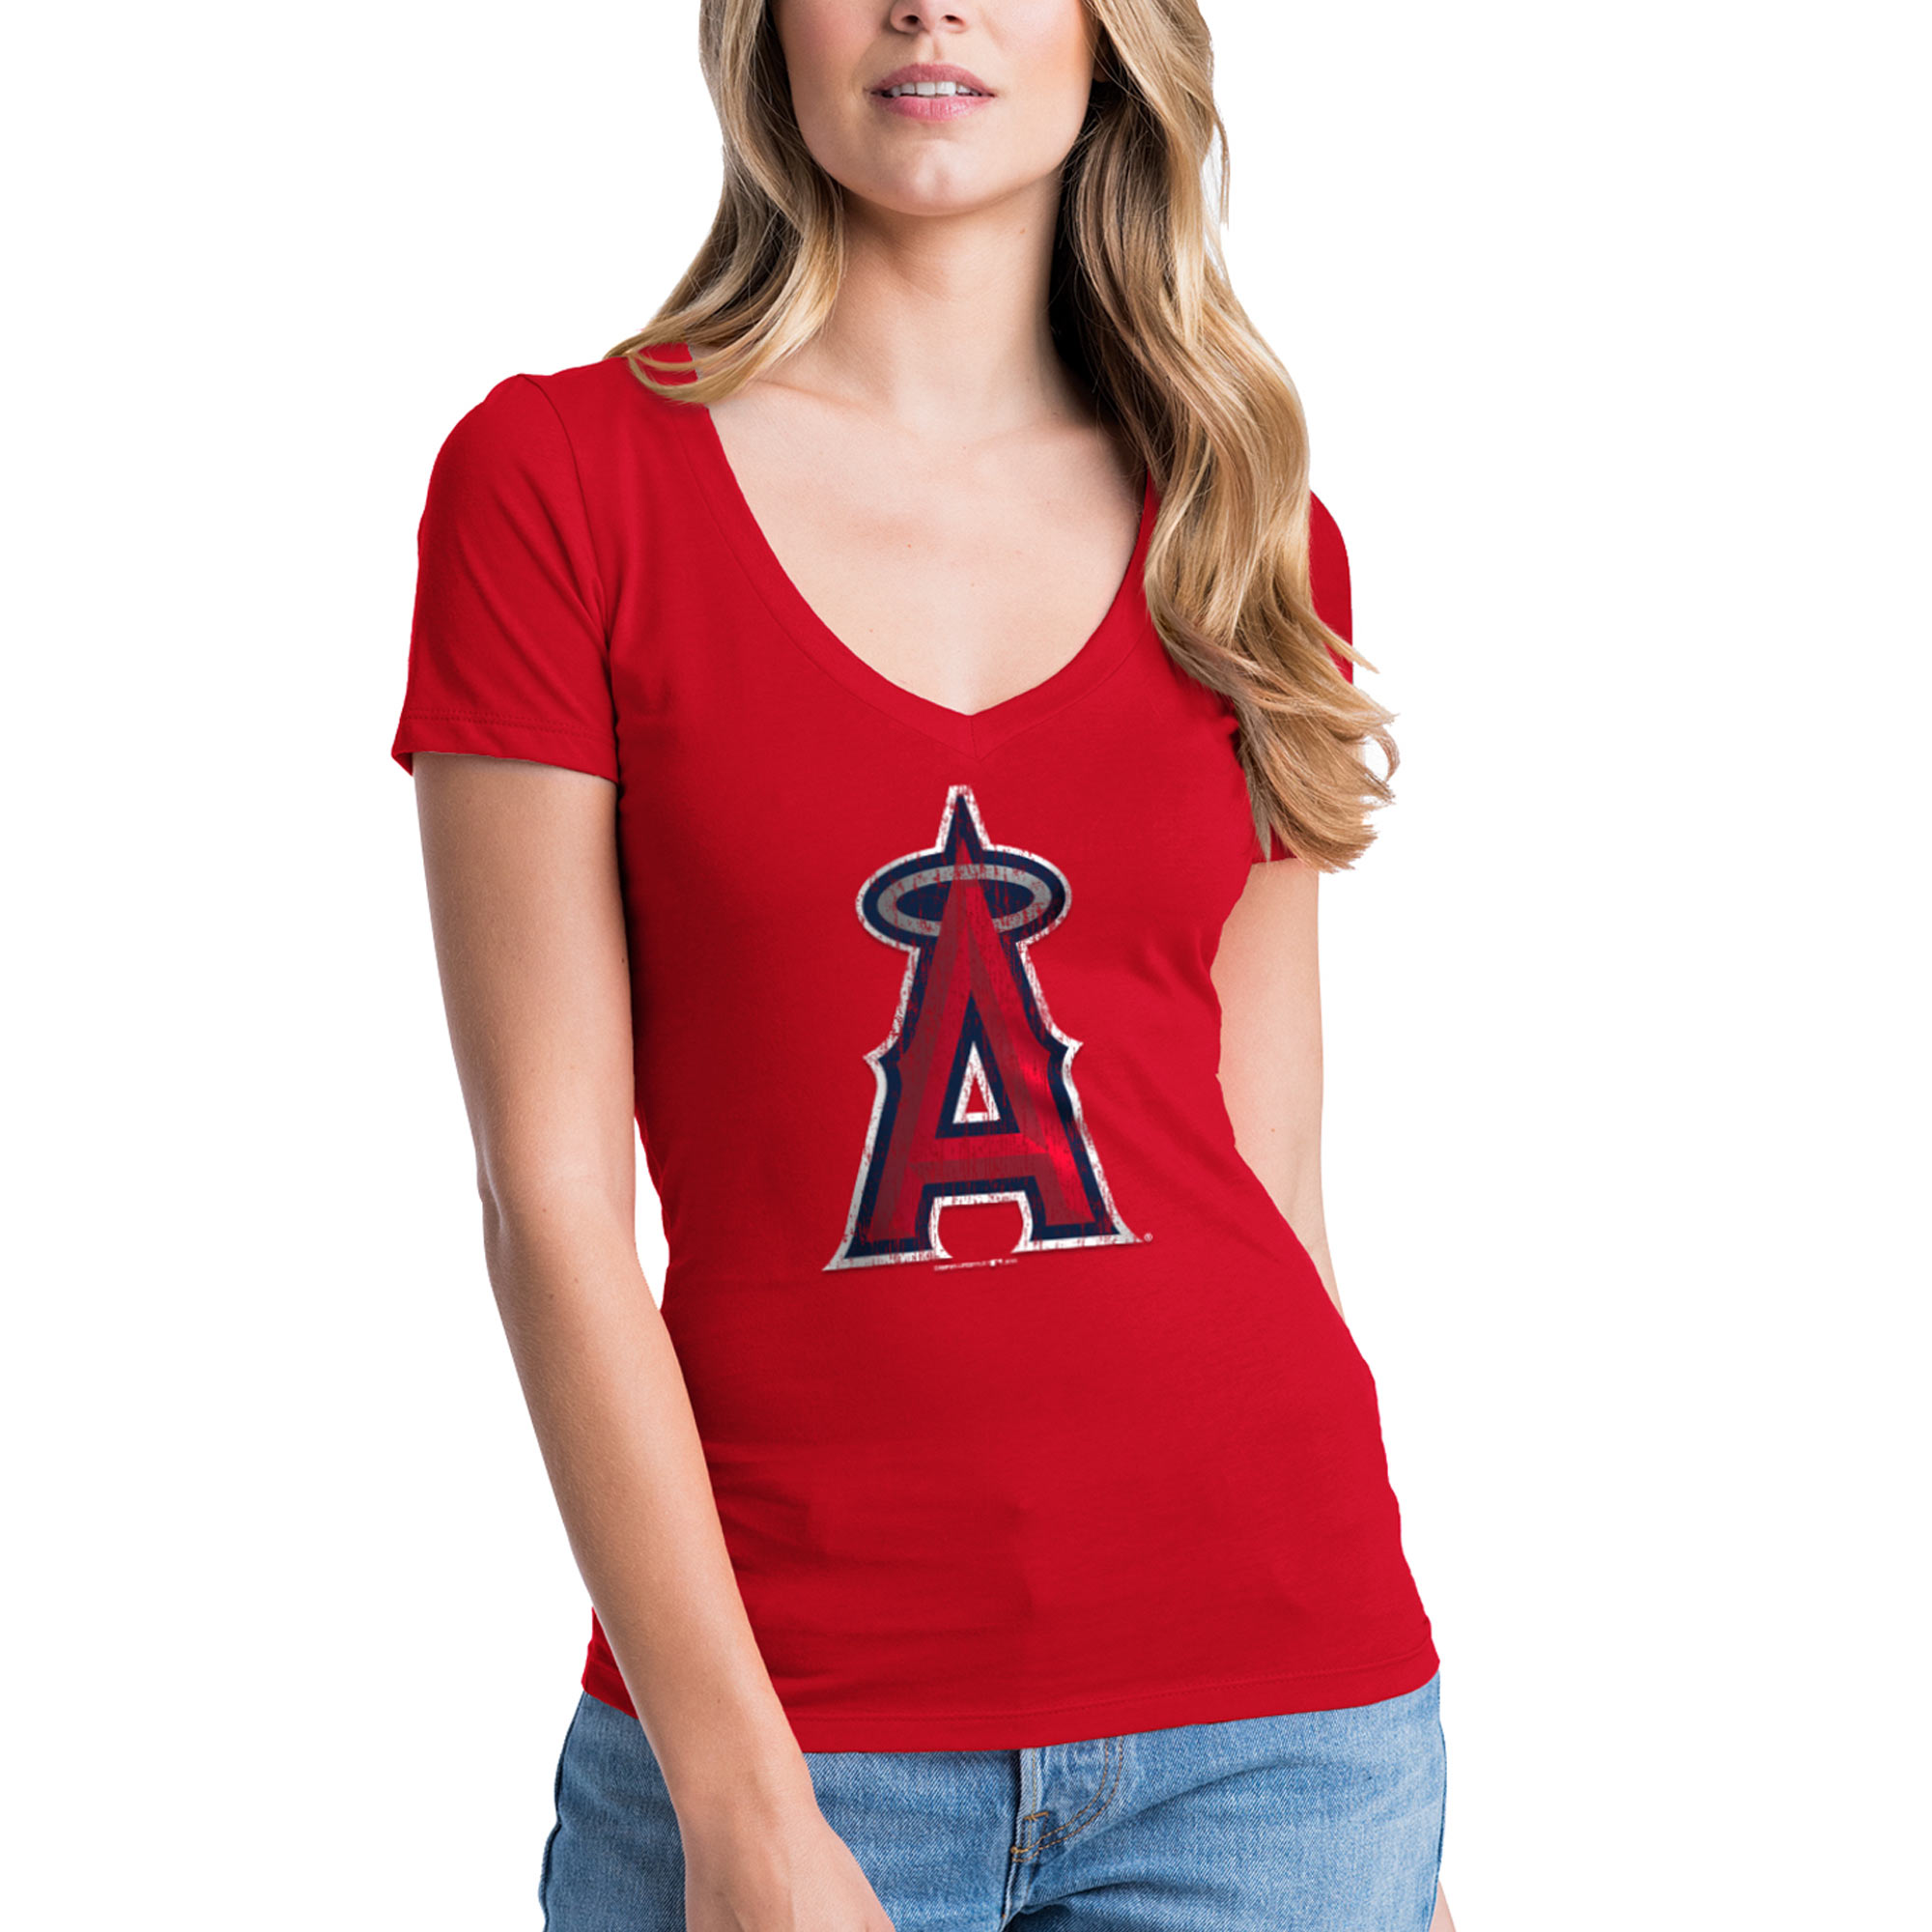 Los Angeles Angels New Era Women's V-Neck T-Shirt - Red